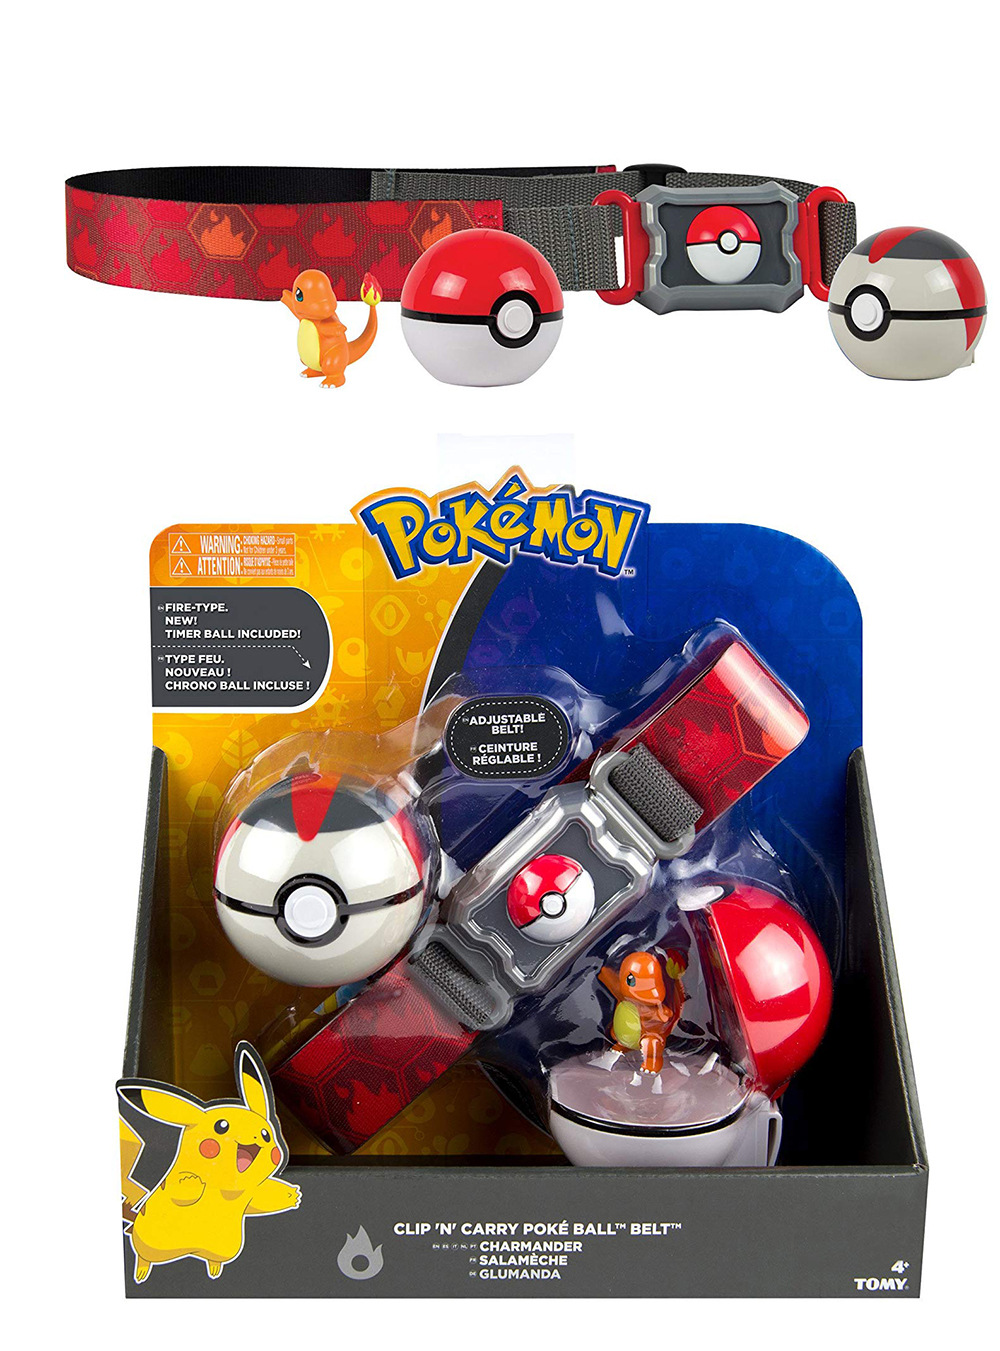 TAKARA TOMY Pokemon Toys Figures New Pokemon Belt Game for Childrne PVC Pokeball with Charizard Pikachu Bulbasaur Squirtle Figur